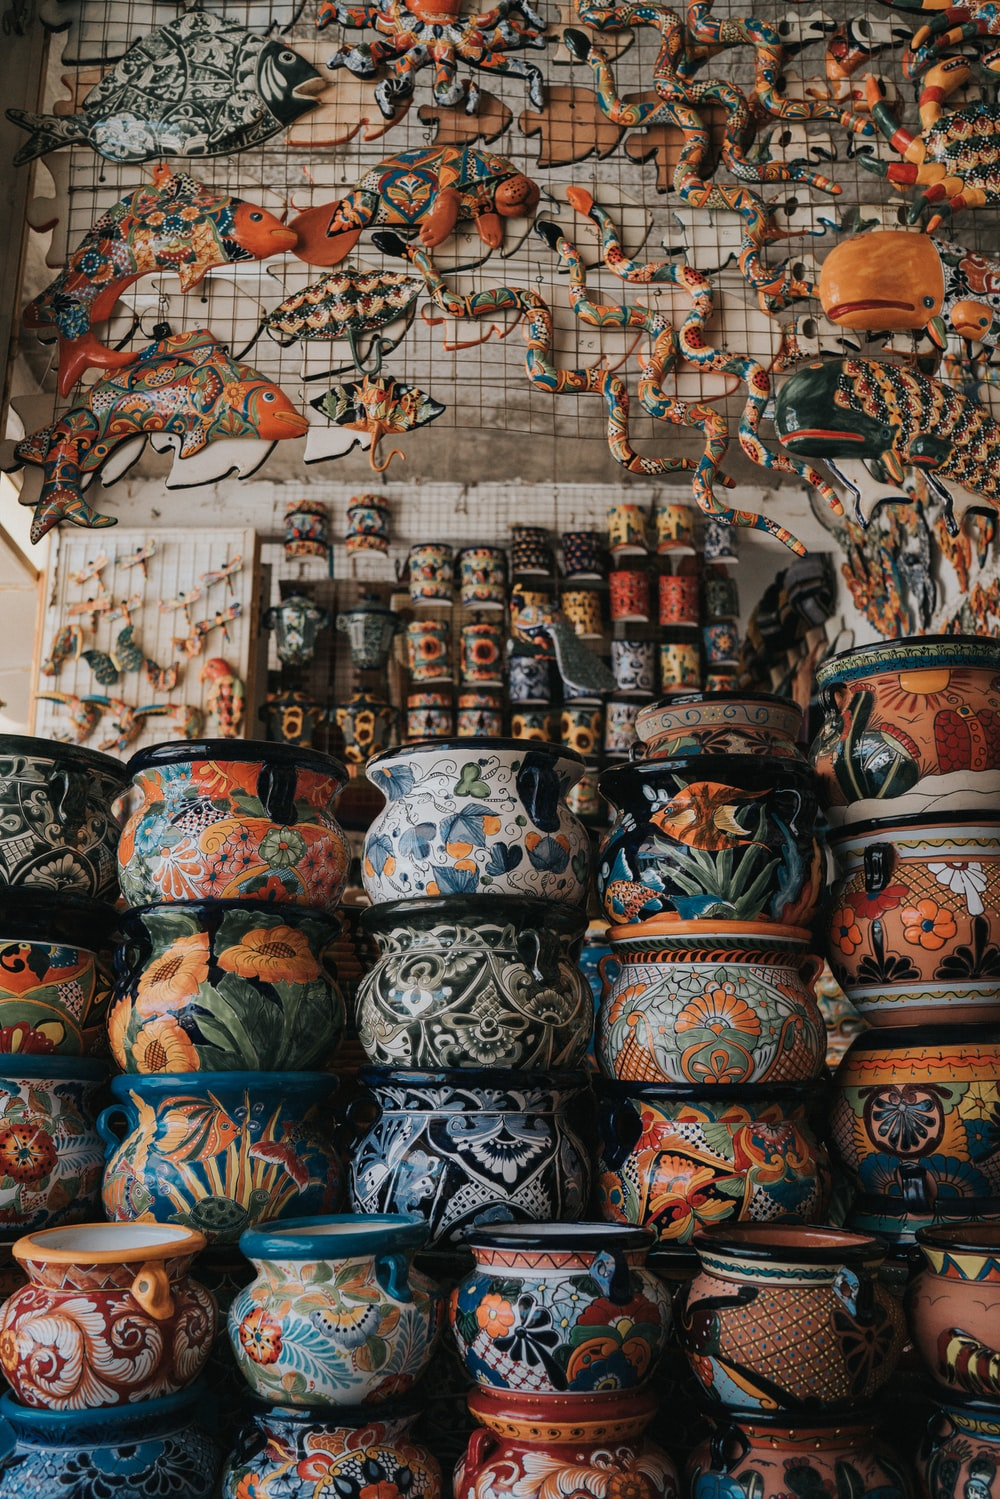 assorted-color clay pots arranged together